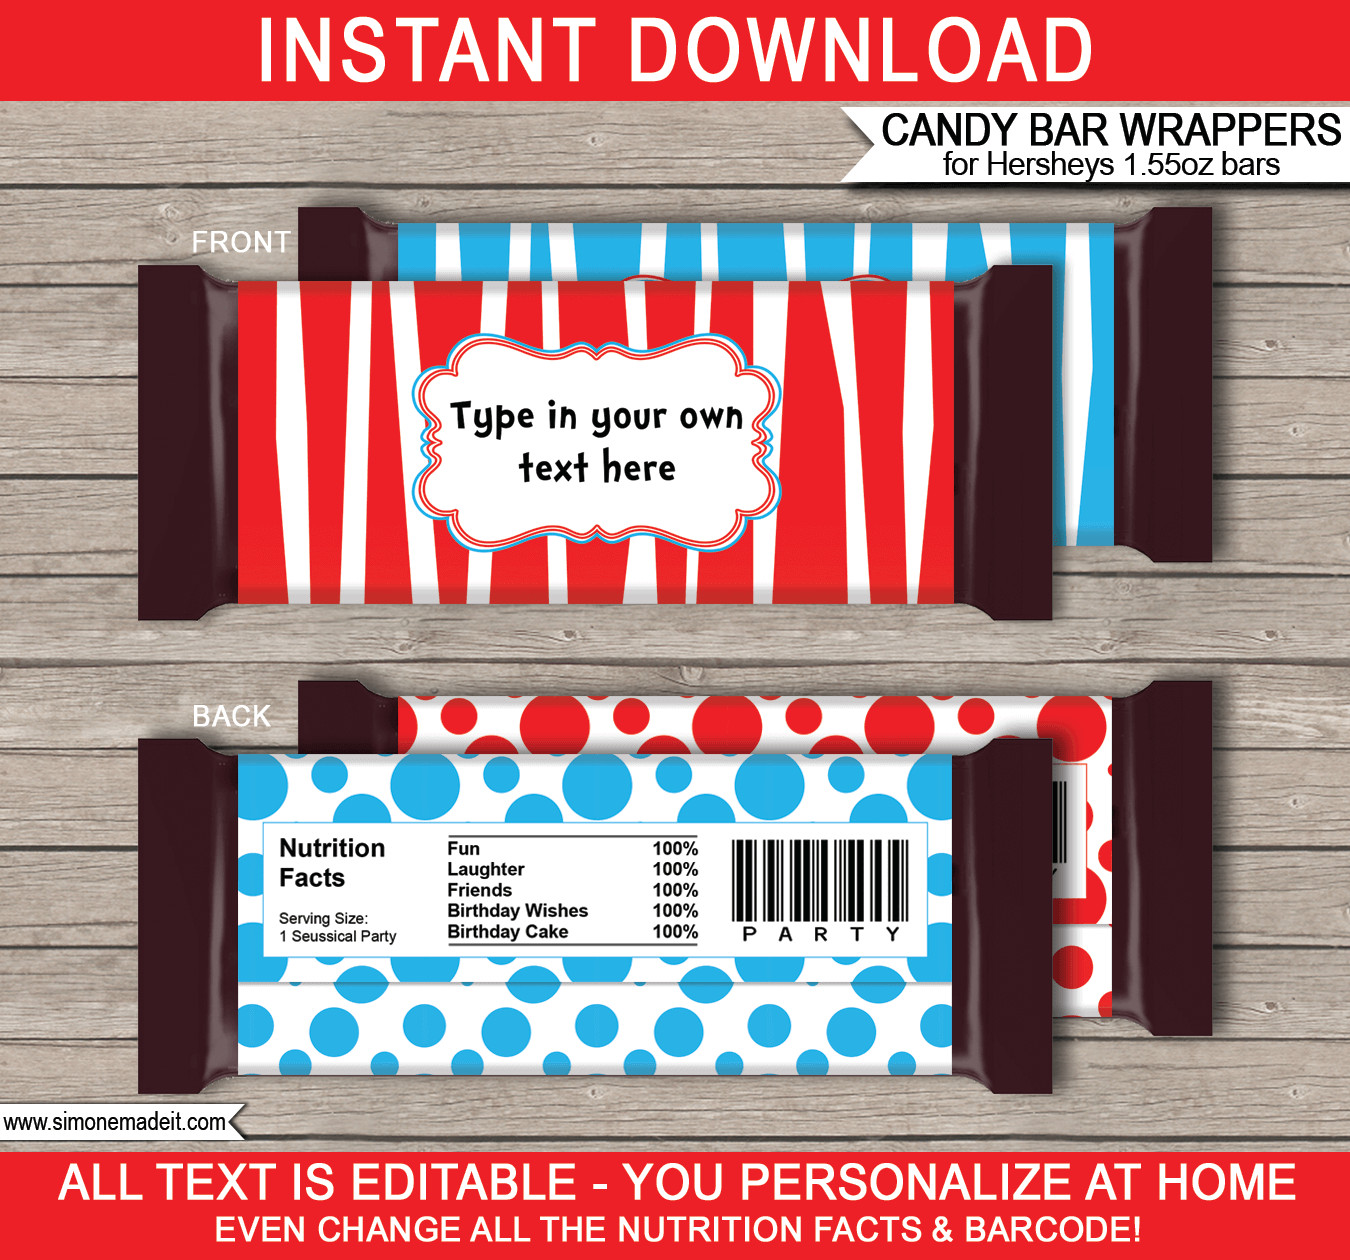 Hershey Candy Bar Wrapper Template Dr Seuss Hershey Candy Bar Wrappers